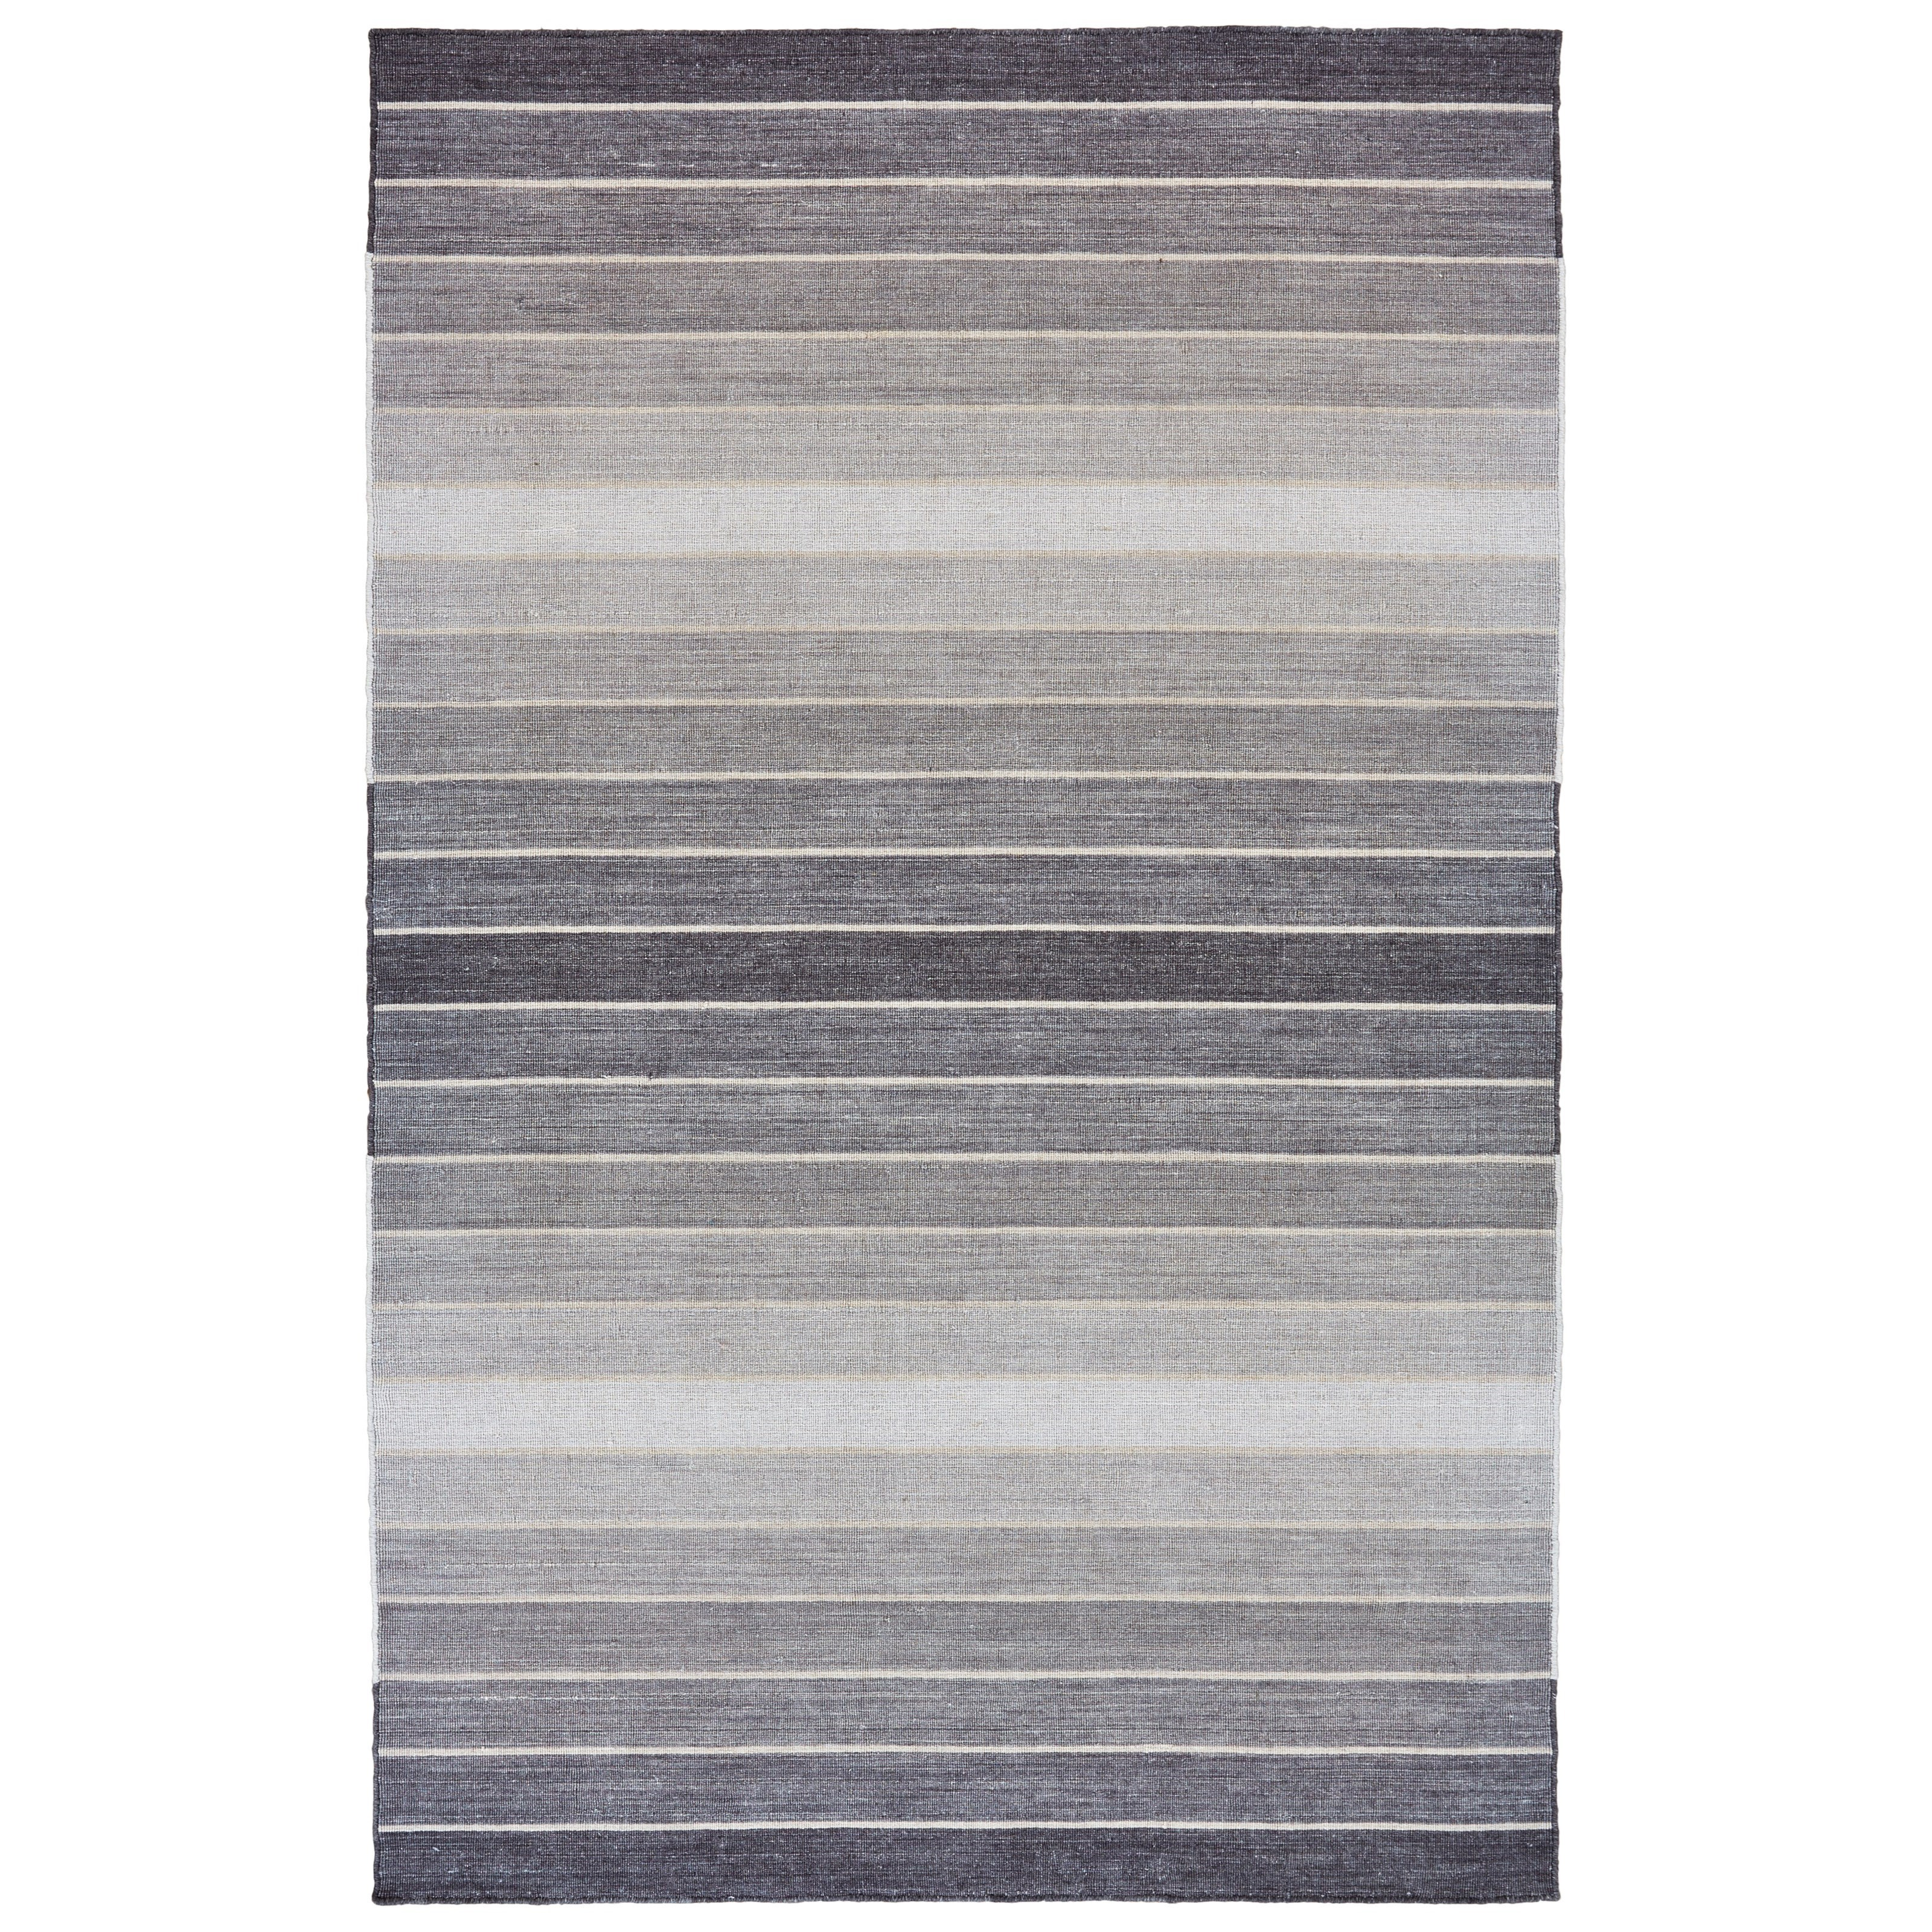 Santino Light Gray 9' x 9 Square Area Rug by Feizy Rugs at Sprintz Furniture